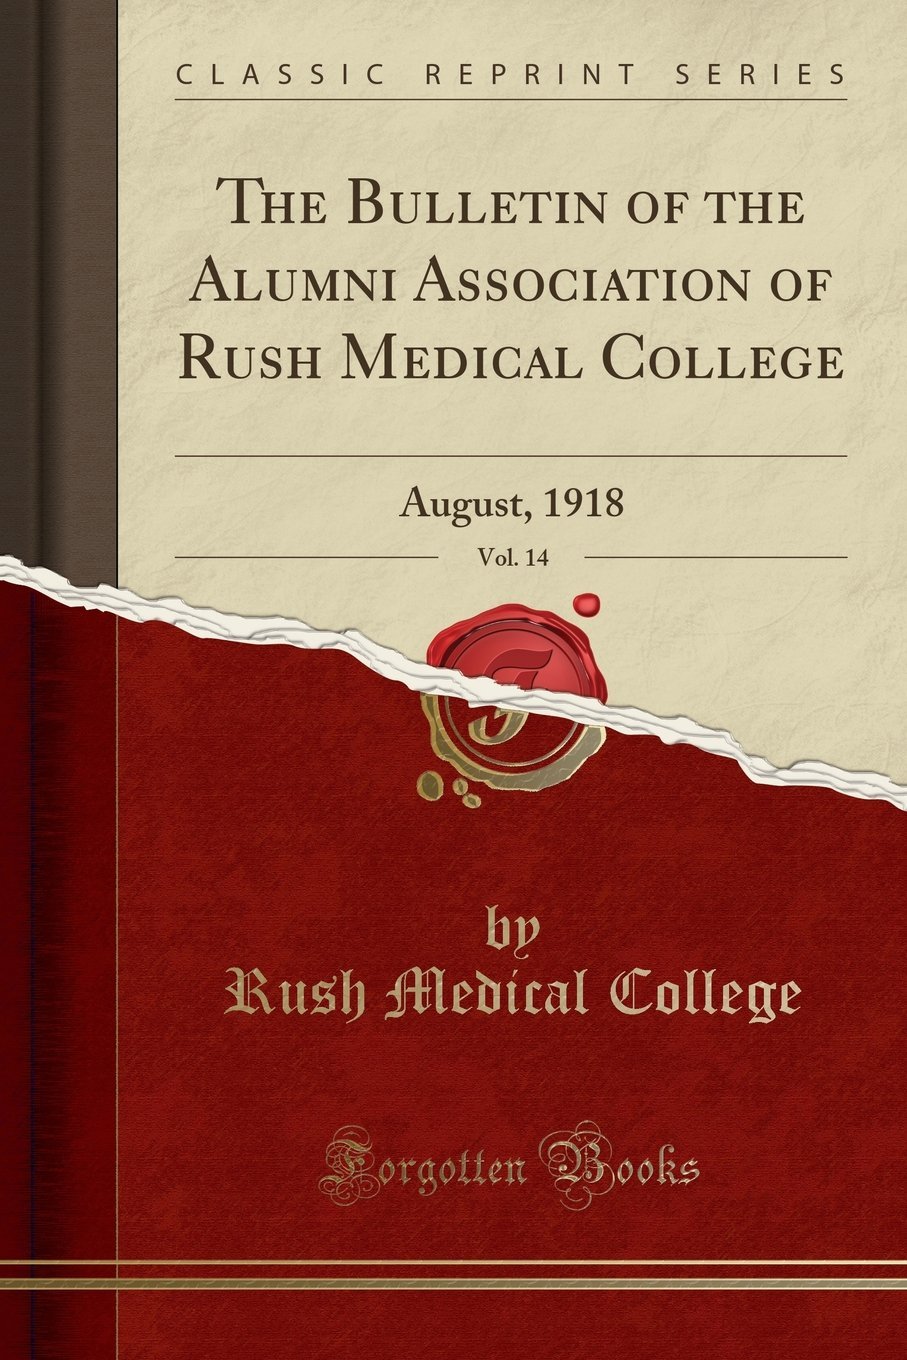 Download The Bulletin of the Alumni Association of Rush Medical College, Vol. 14: August, 1918 (Classic Reprint) ebook